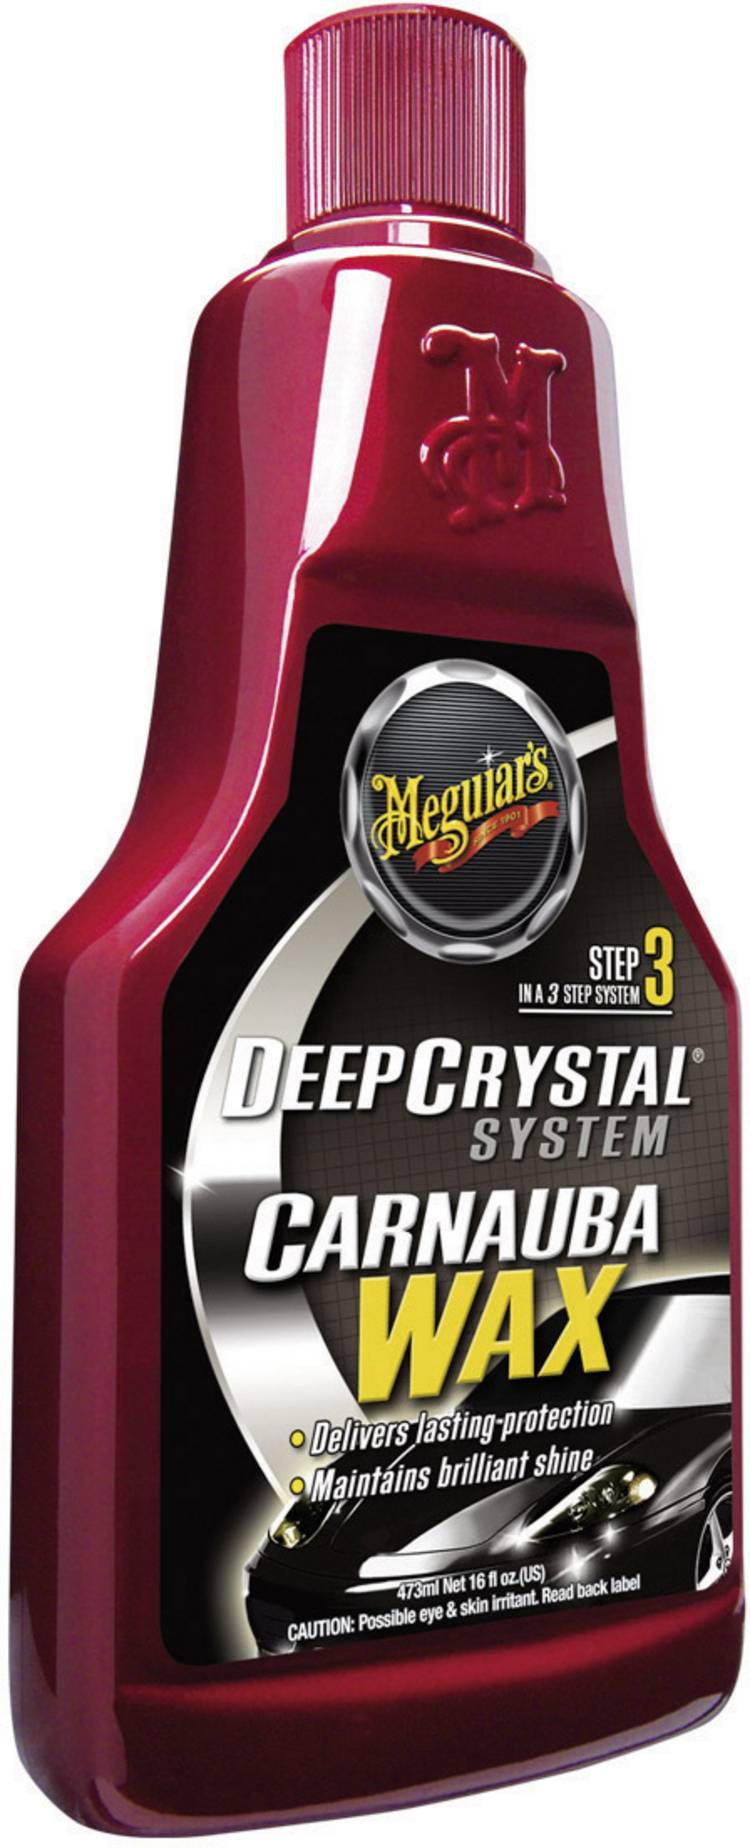 Image of Autowas 473 ml Meguiars Deep Crystal Wax Carnauba 650020